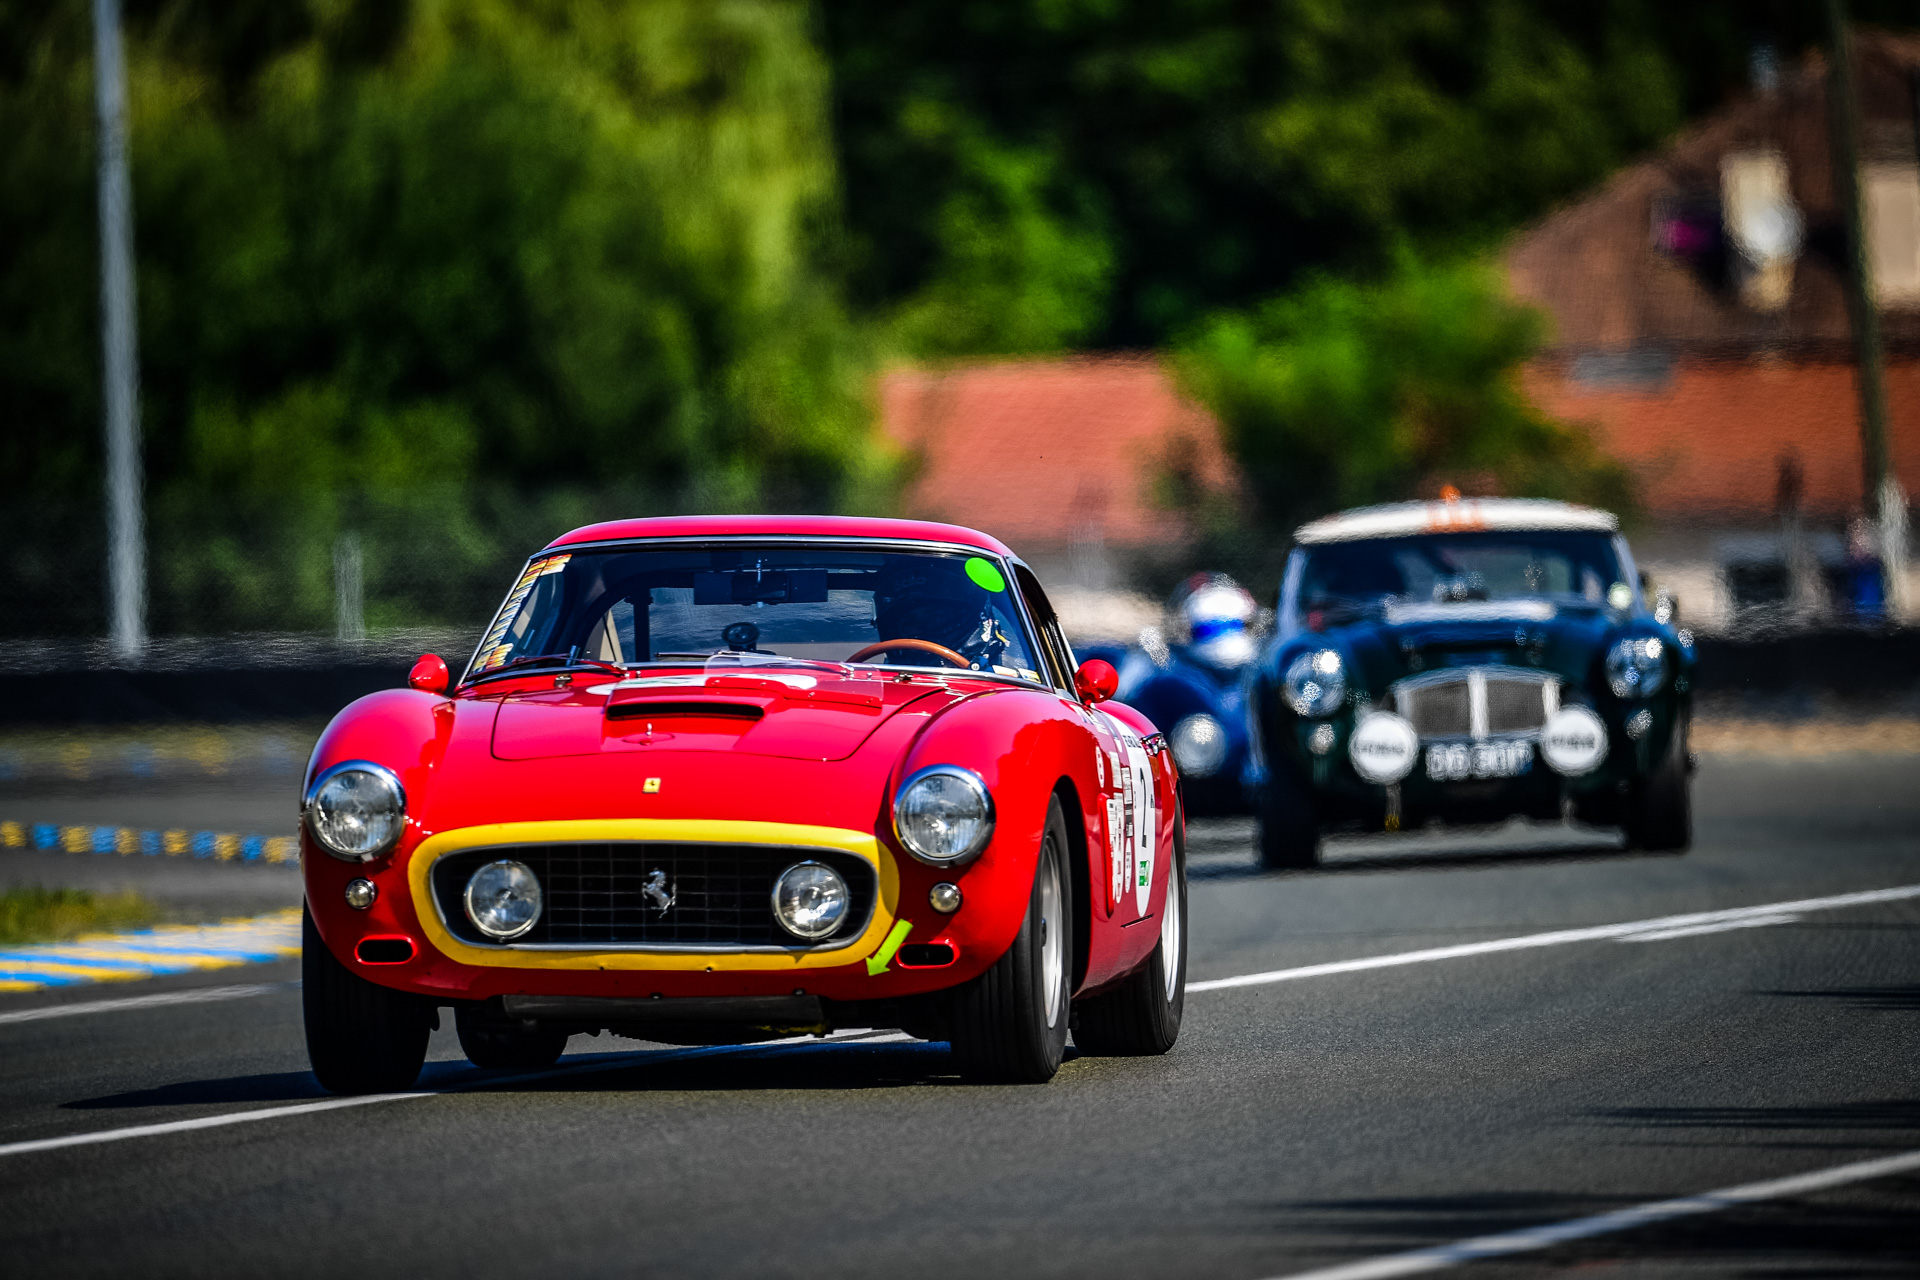 Calendrier Course Camarguaise 2021 Chantilly Arts & Elegance Richard Mille